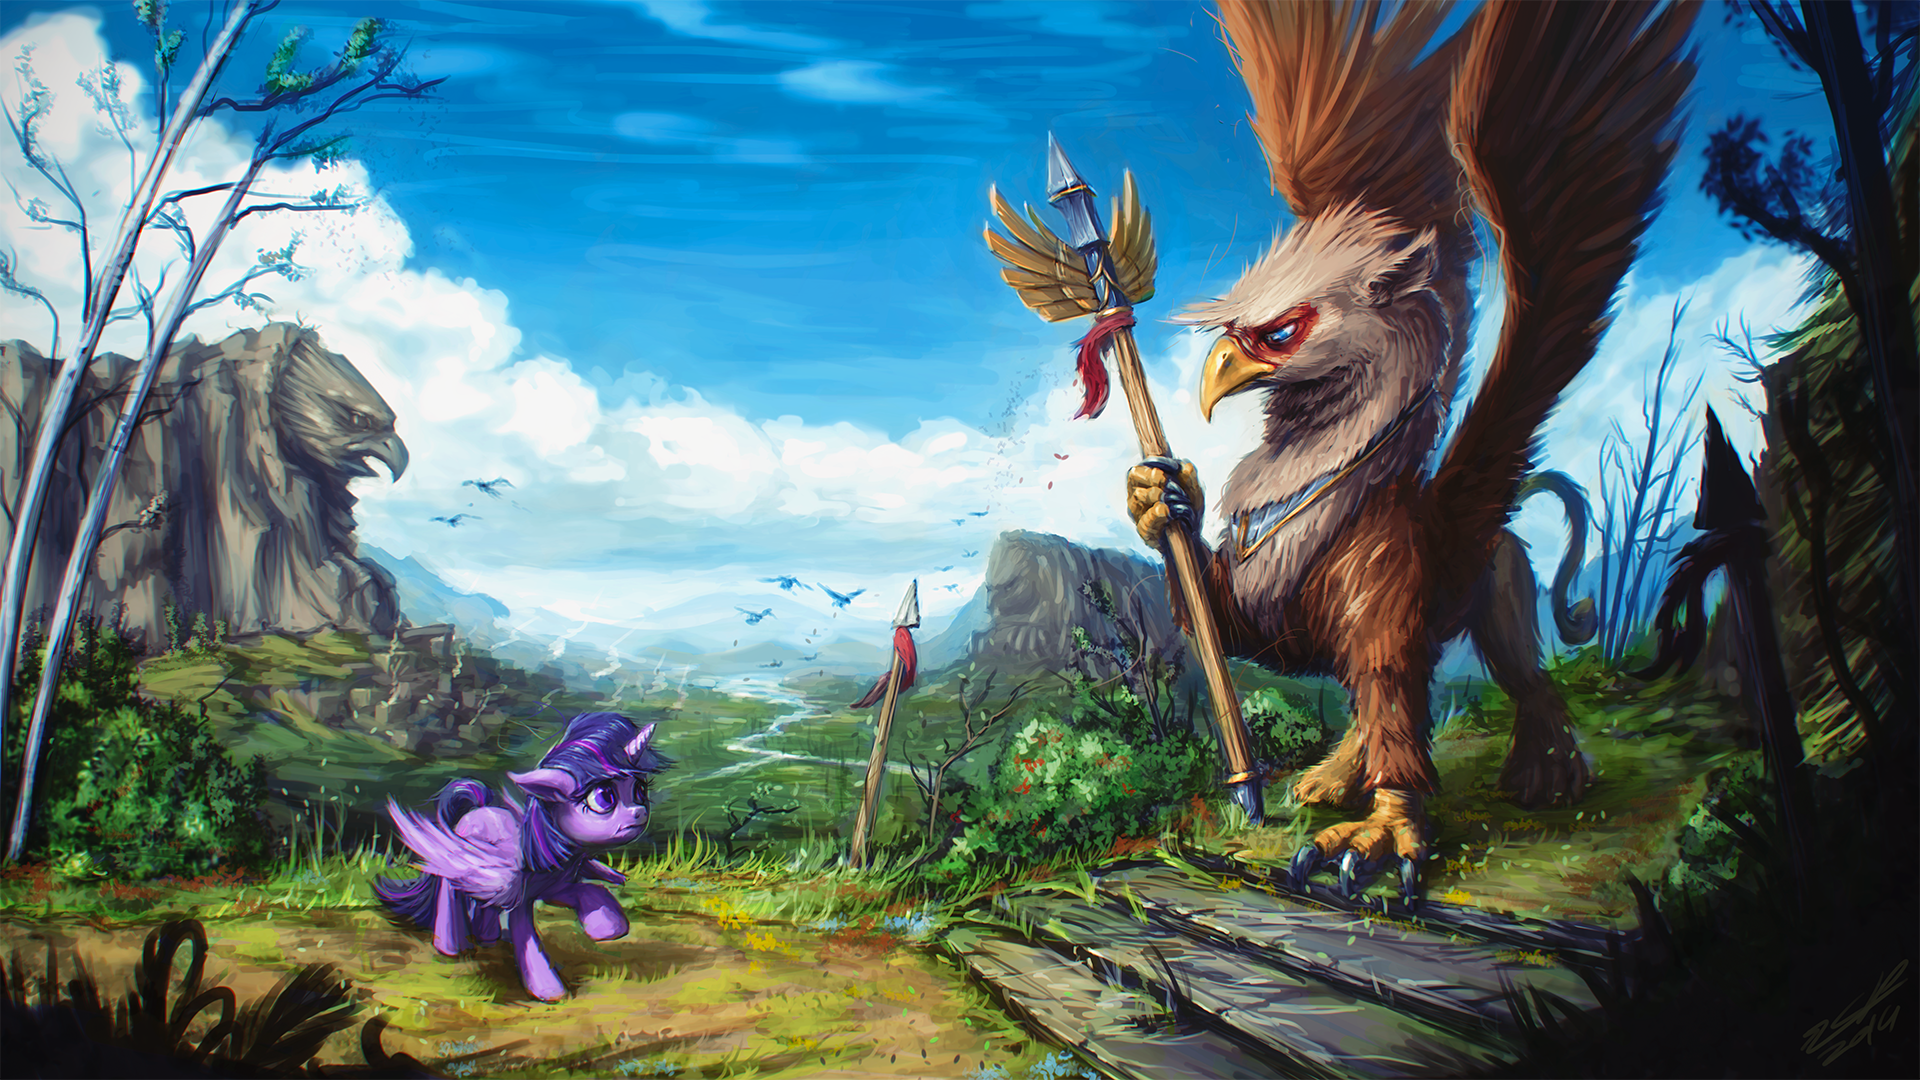 On Feathered Grounds by AssasinMonkey